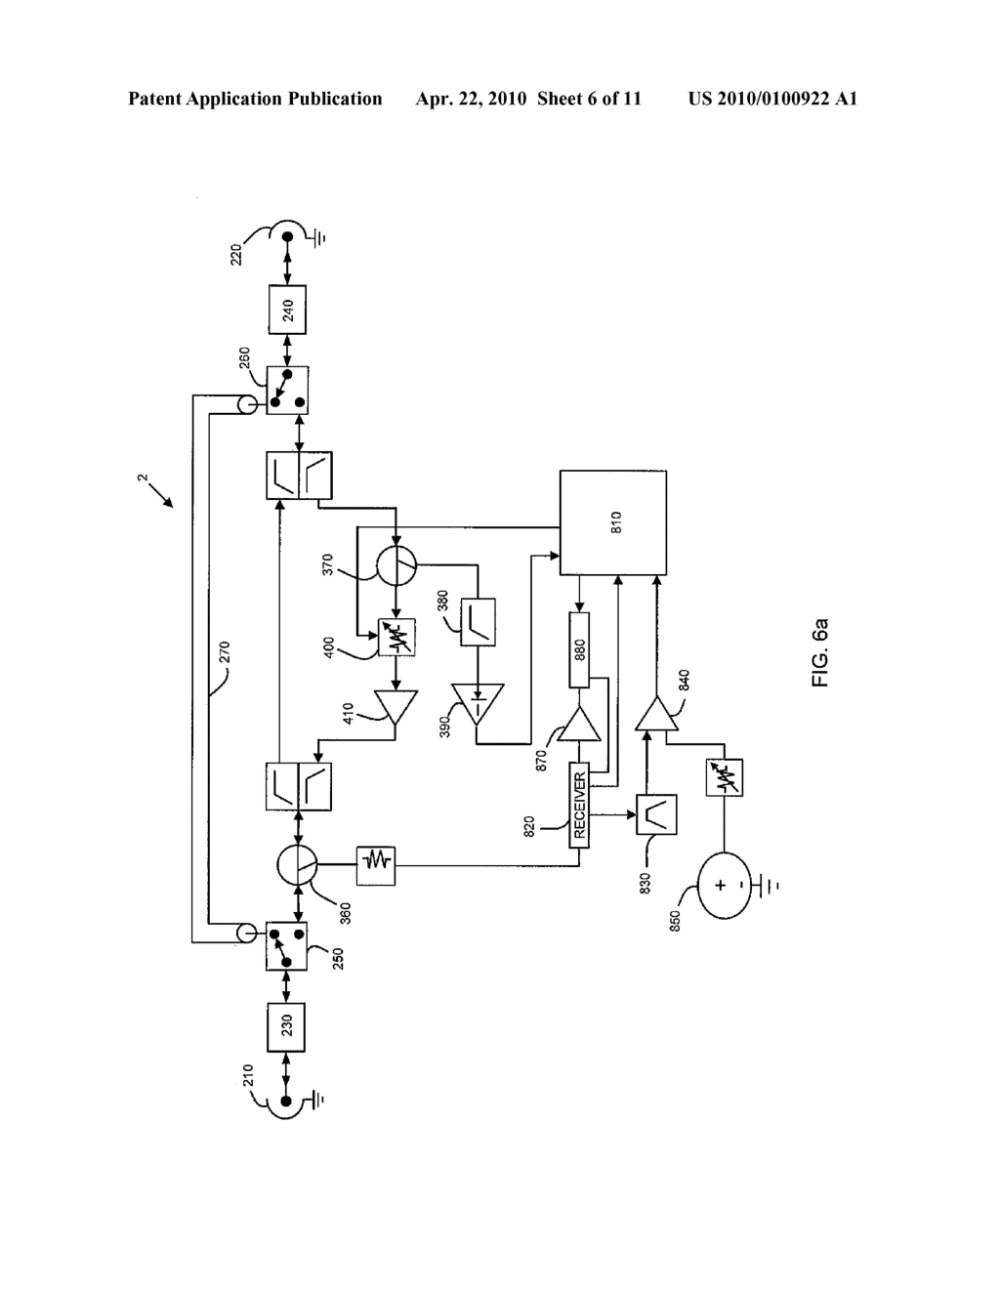 medium resolution of downstream output level and or output level tilt compensation device between catv distribution system and catv user diagram schematic and image 07